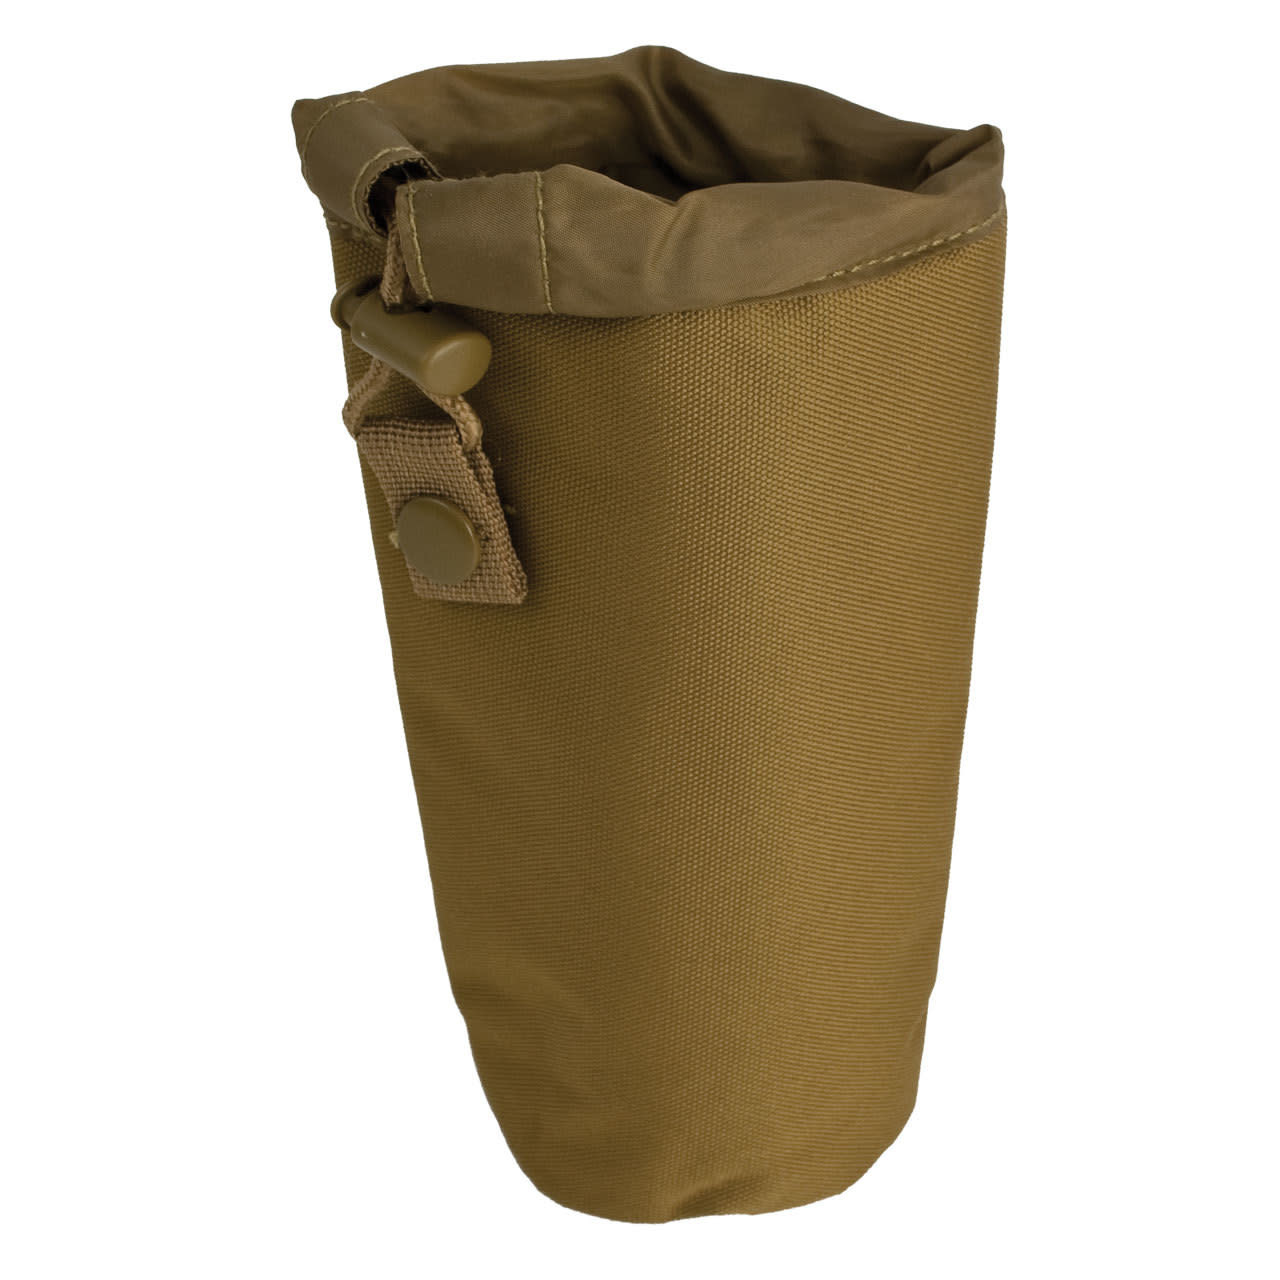 Red Rock Outdoor Gear Molle Water Bottle Attachment